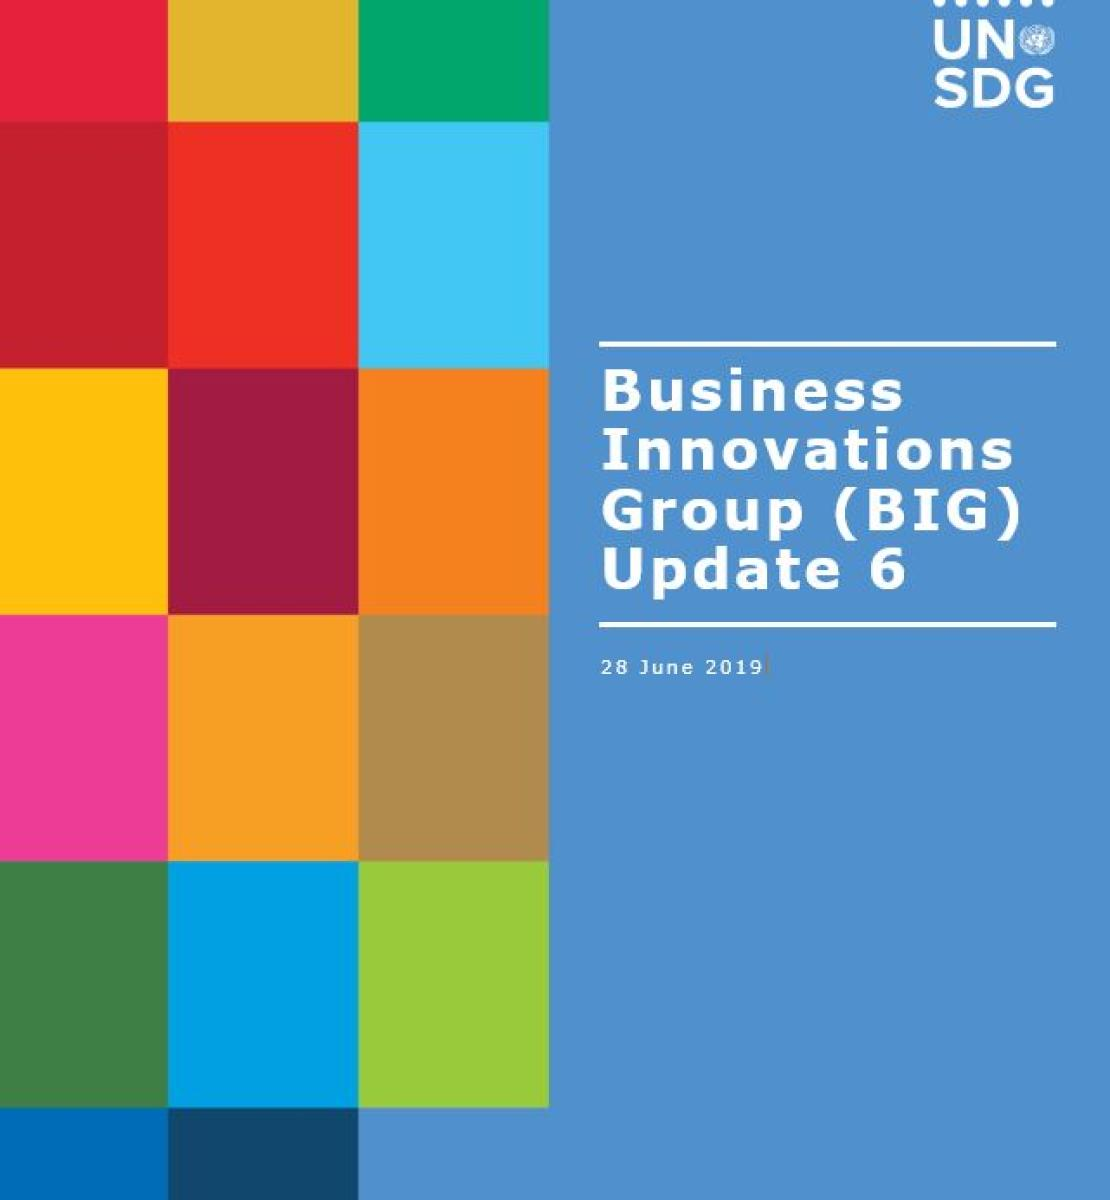 Cover shows BIG Update 6 title against a solid background by a grid of colourful rectangle grid.